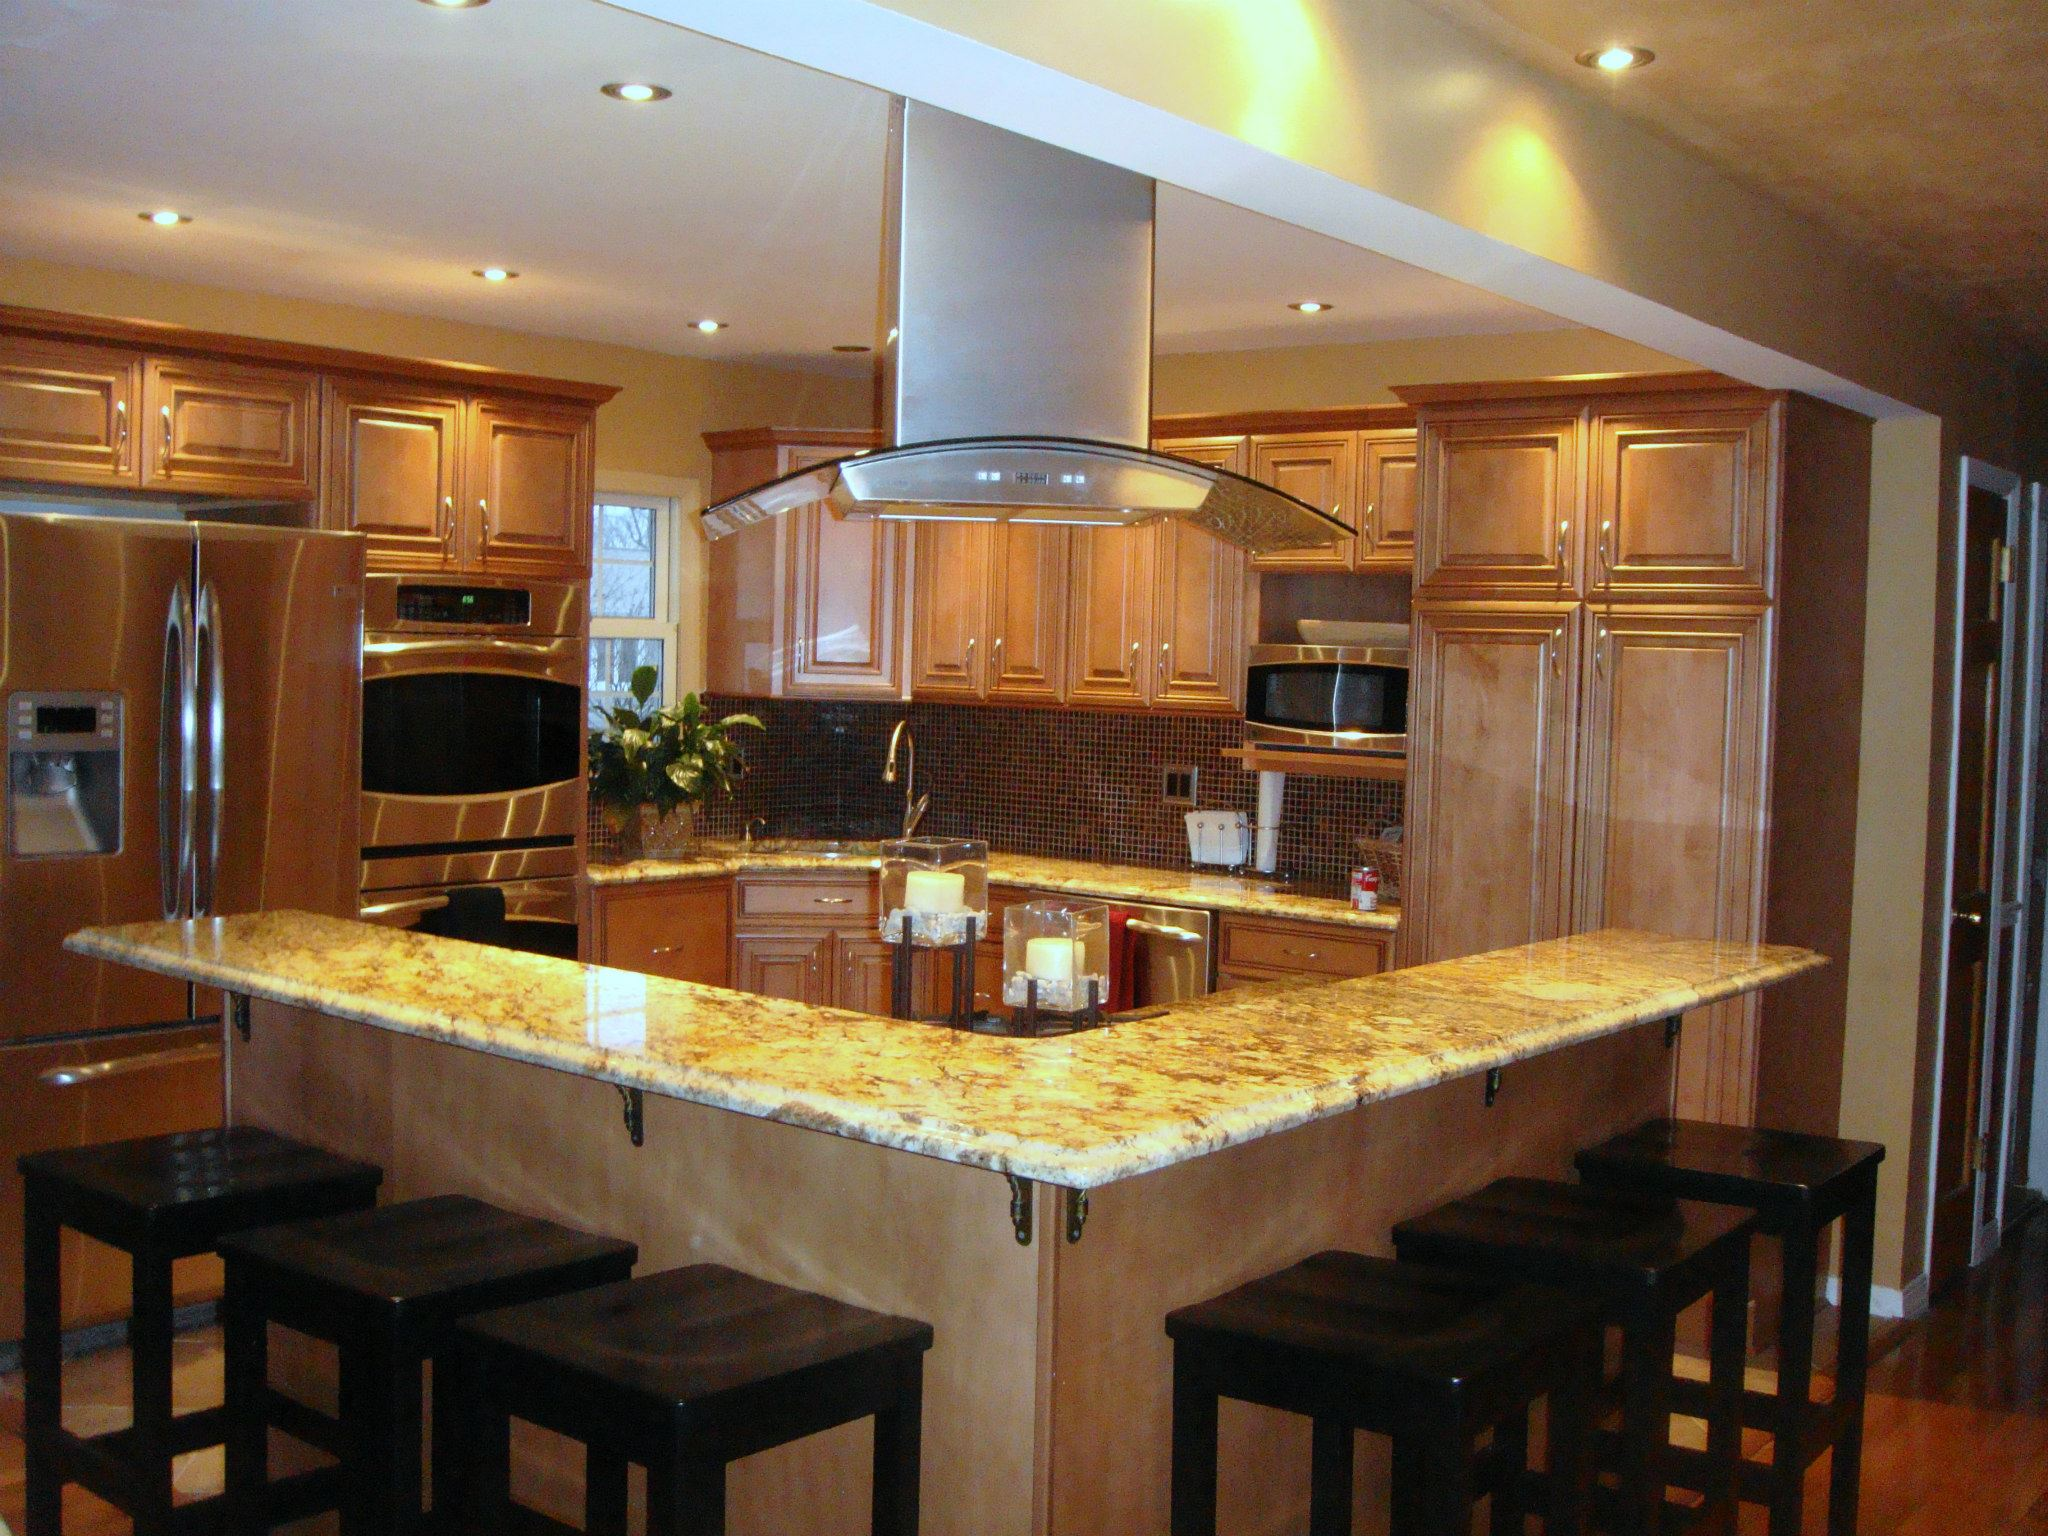 Kitchen Gallery Kitchen Remodel Open Plan Design Brian J Gallagher 39 S Custom Carpentry